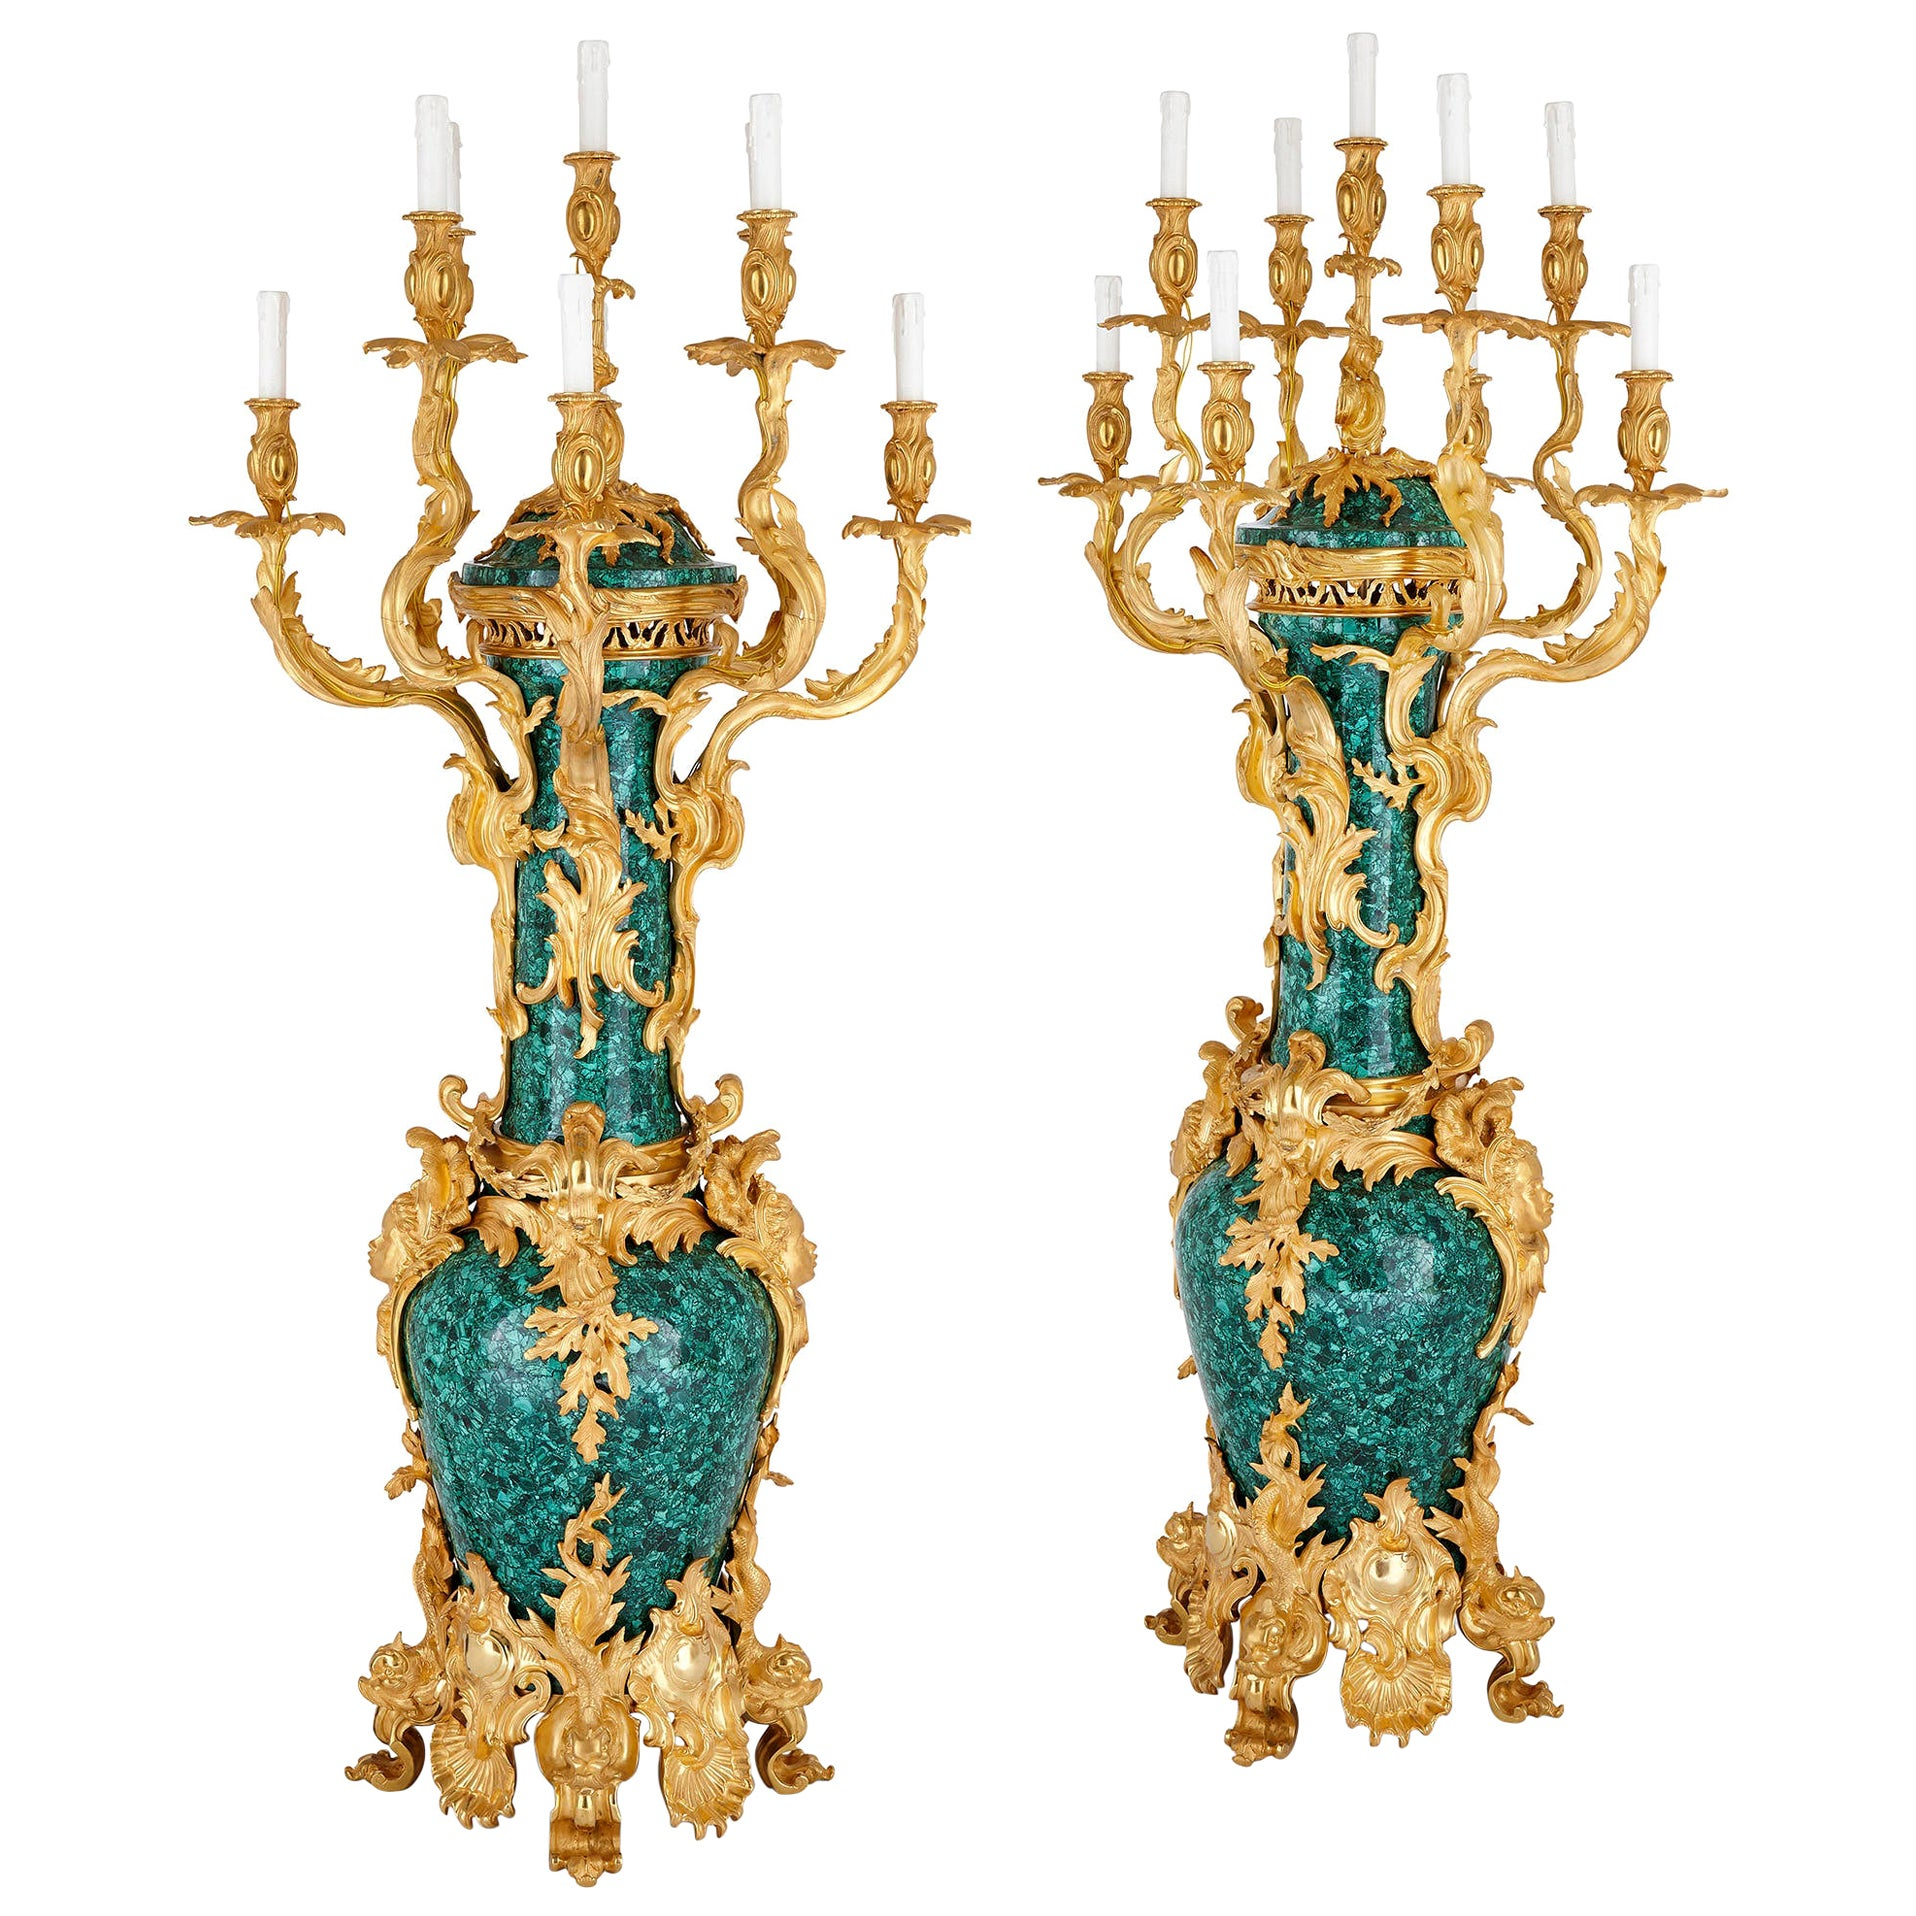 Pair of Large Rococo Style Gilt Bronze and Malachite Candelabra